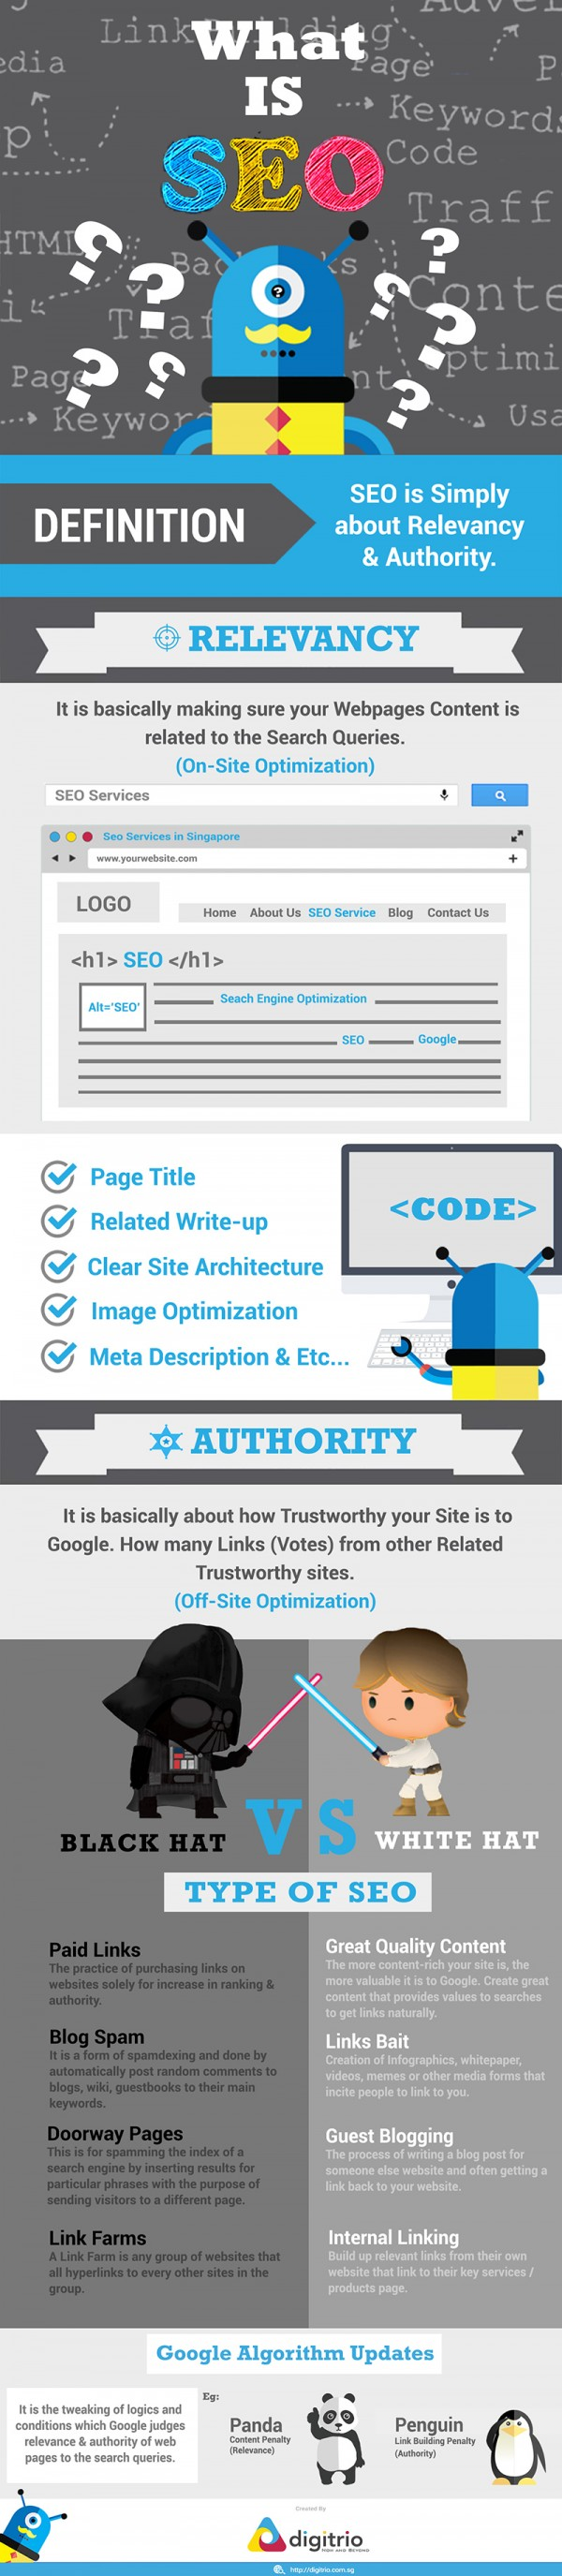 what-is-seo-infographic